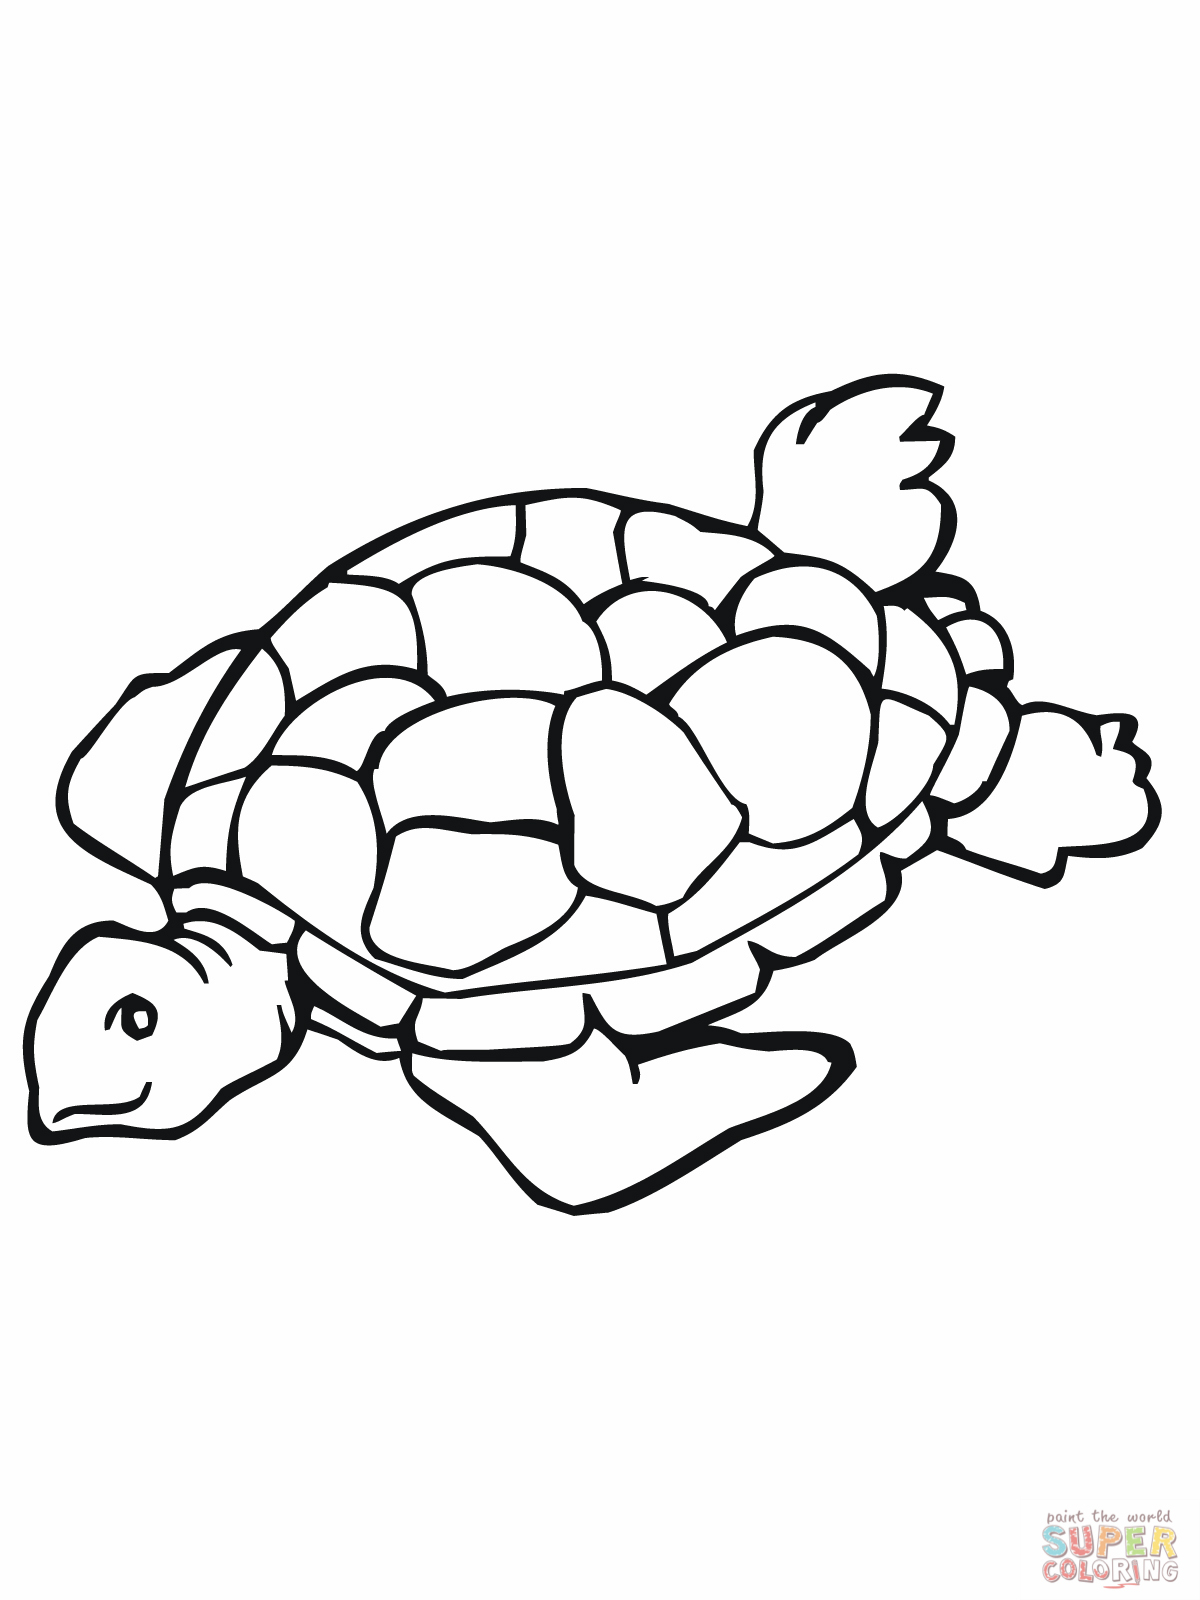 Tortoise clipart coloring page #4